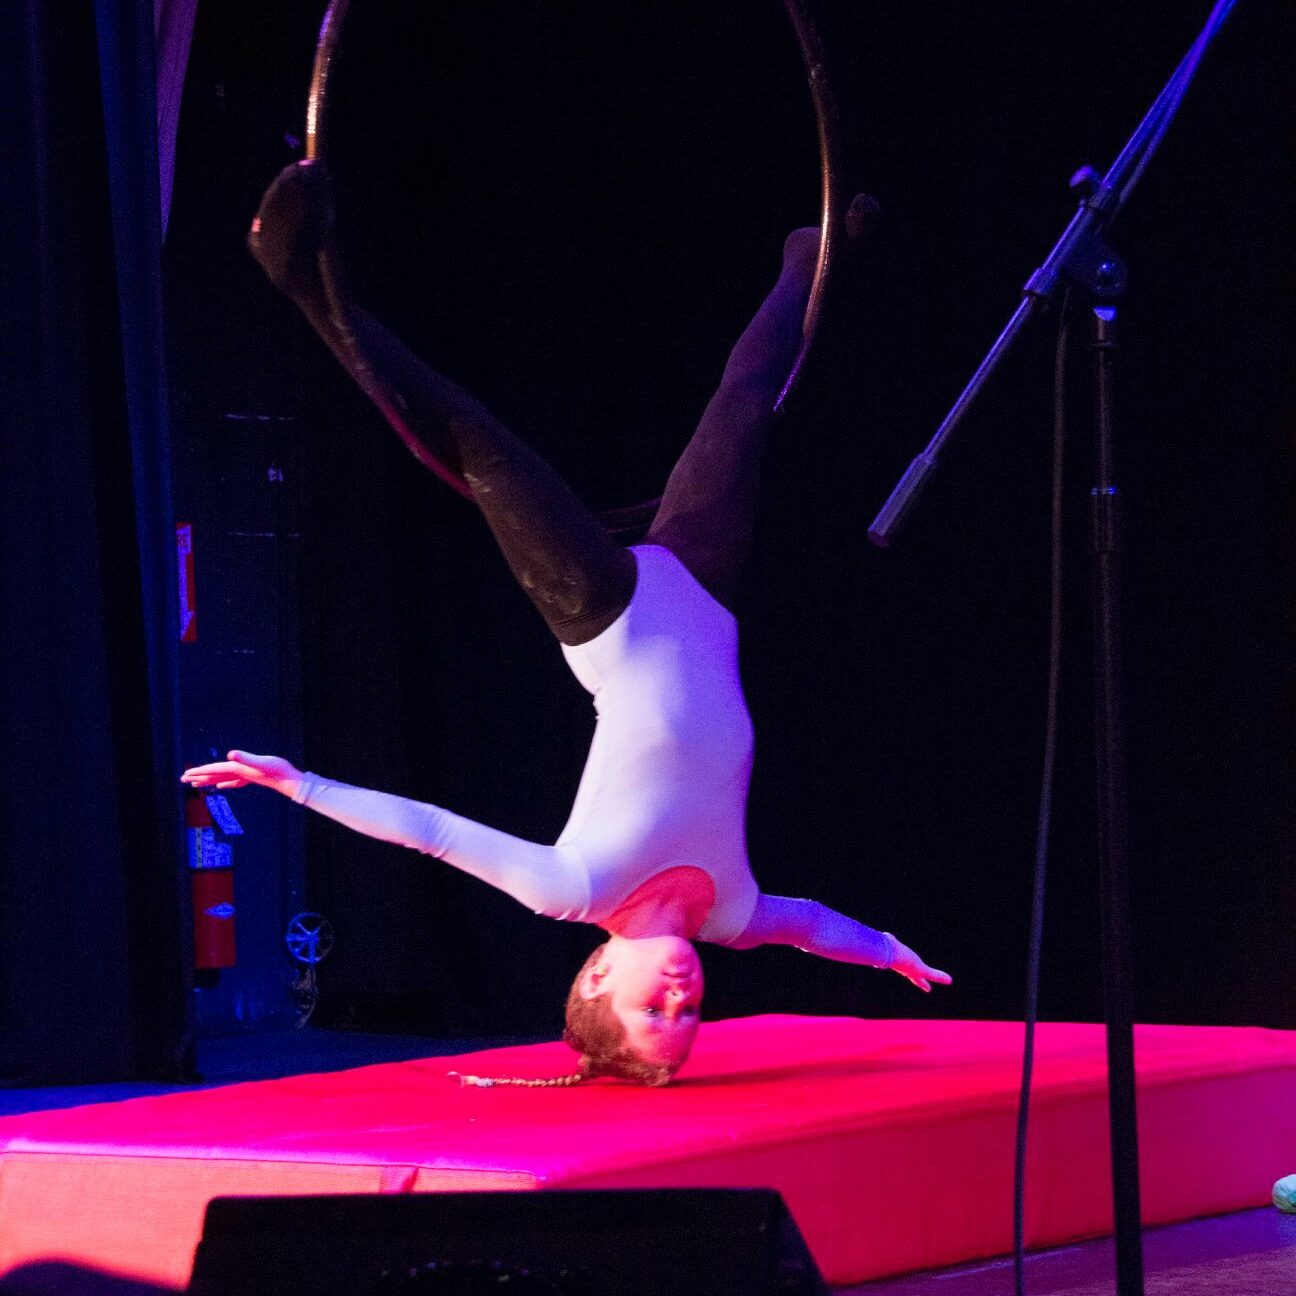 Ruby Hoop performance at Arena Theater